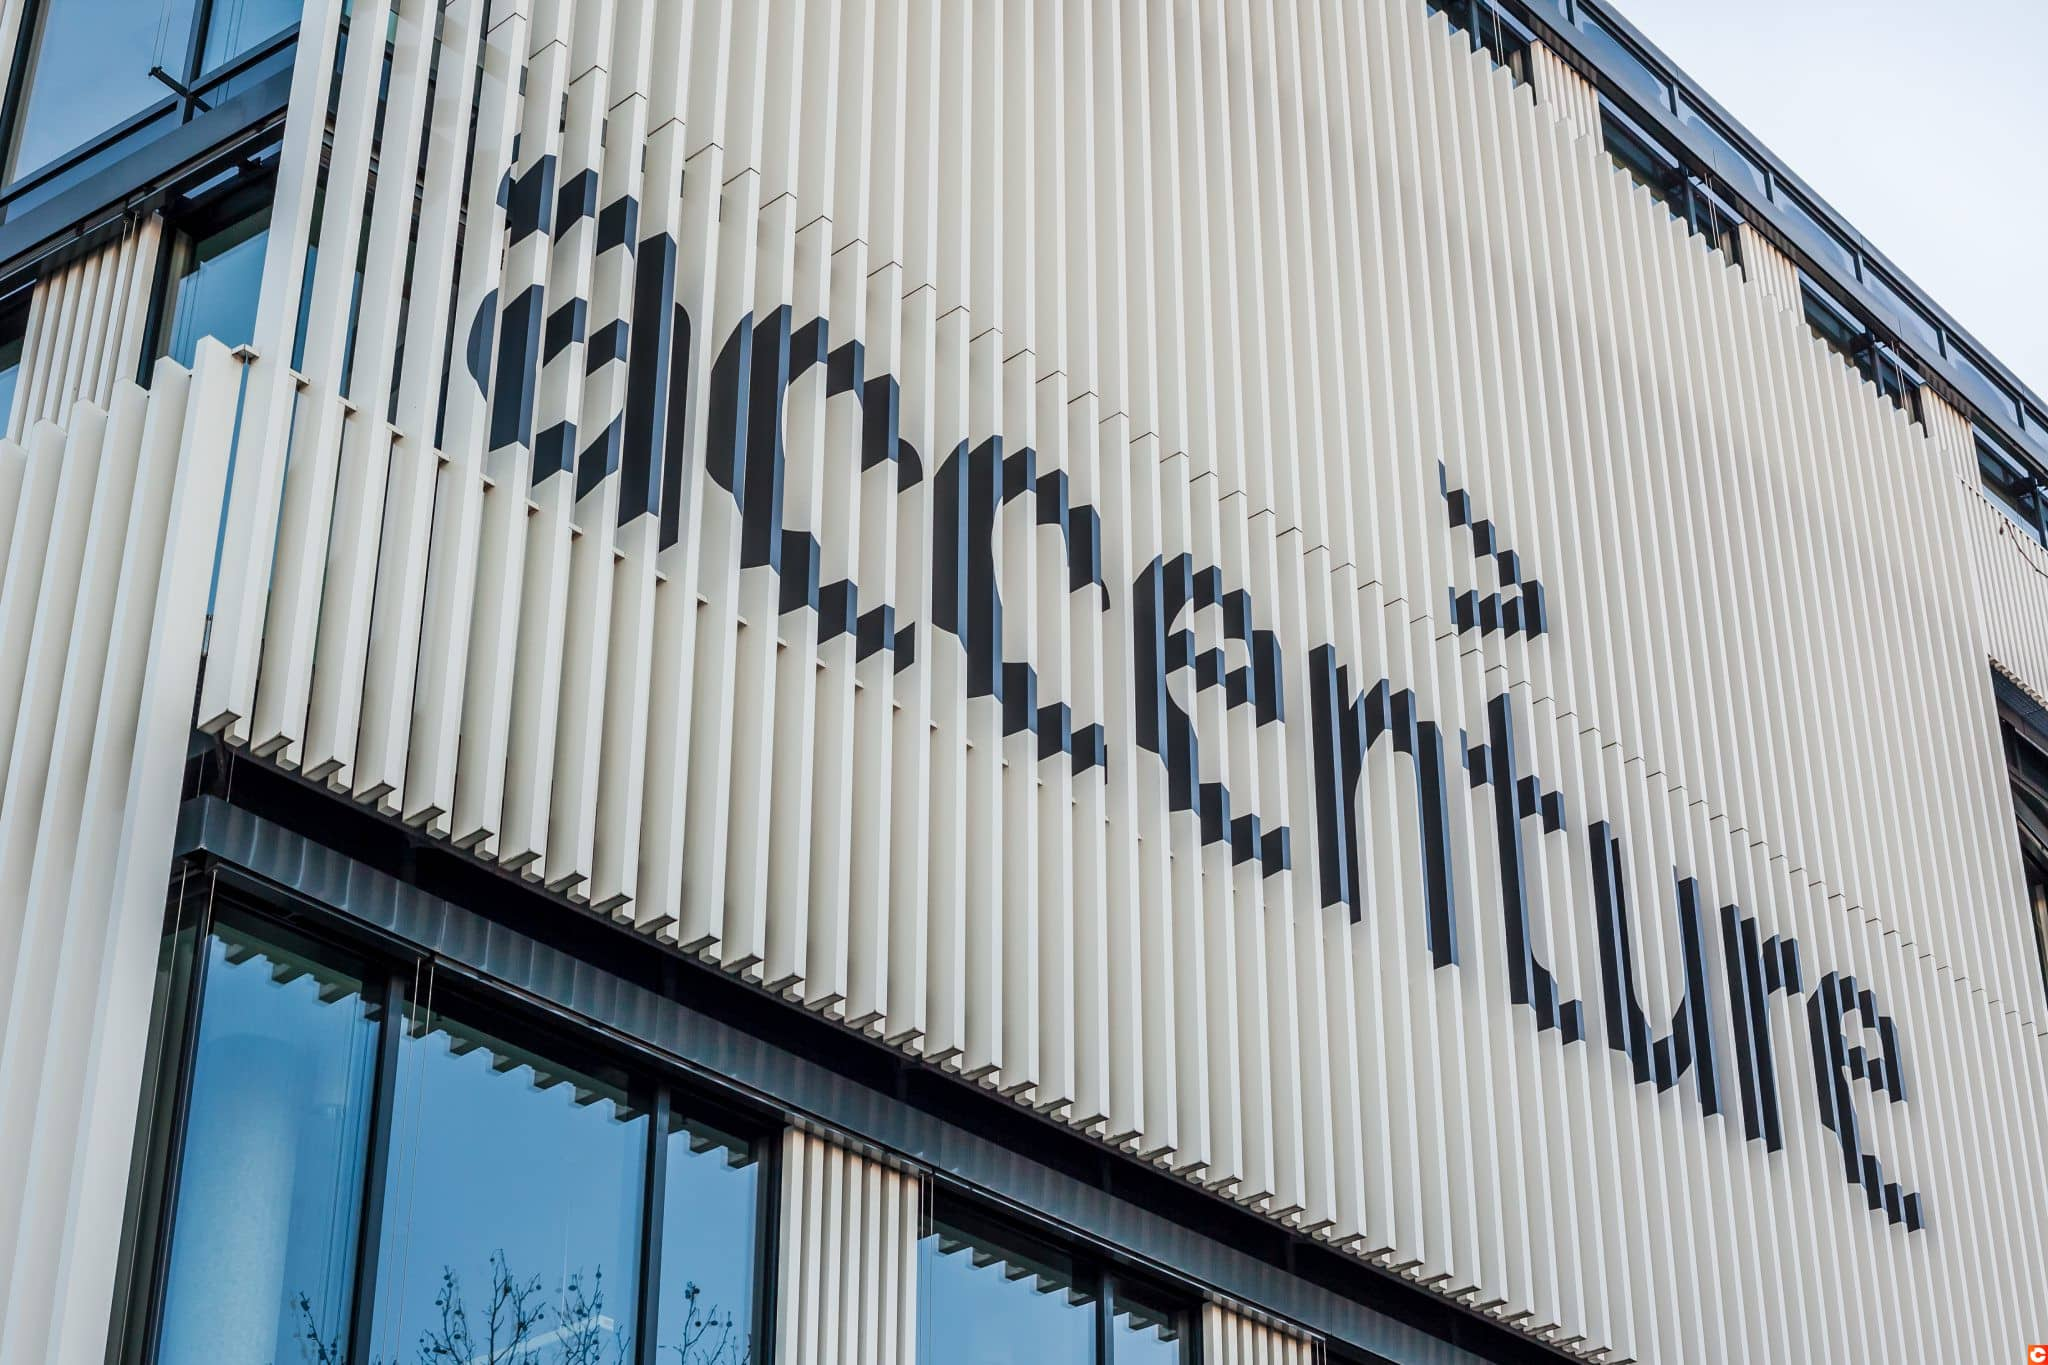 MUNICH, GERMANY - DECEMBER 26, 2018: Accenture logo at the company office building located in Munich, Germany